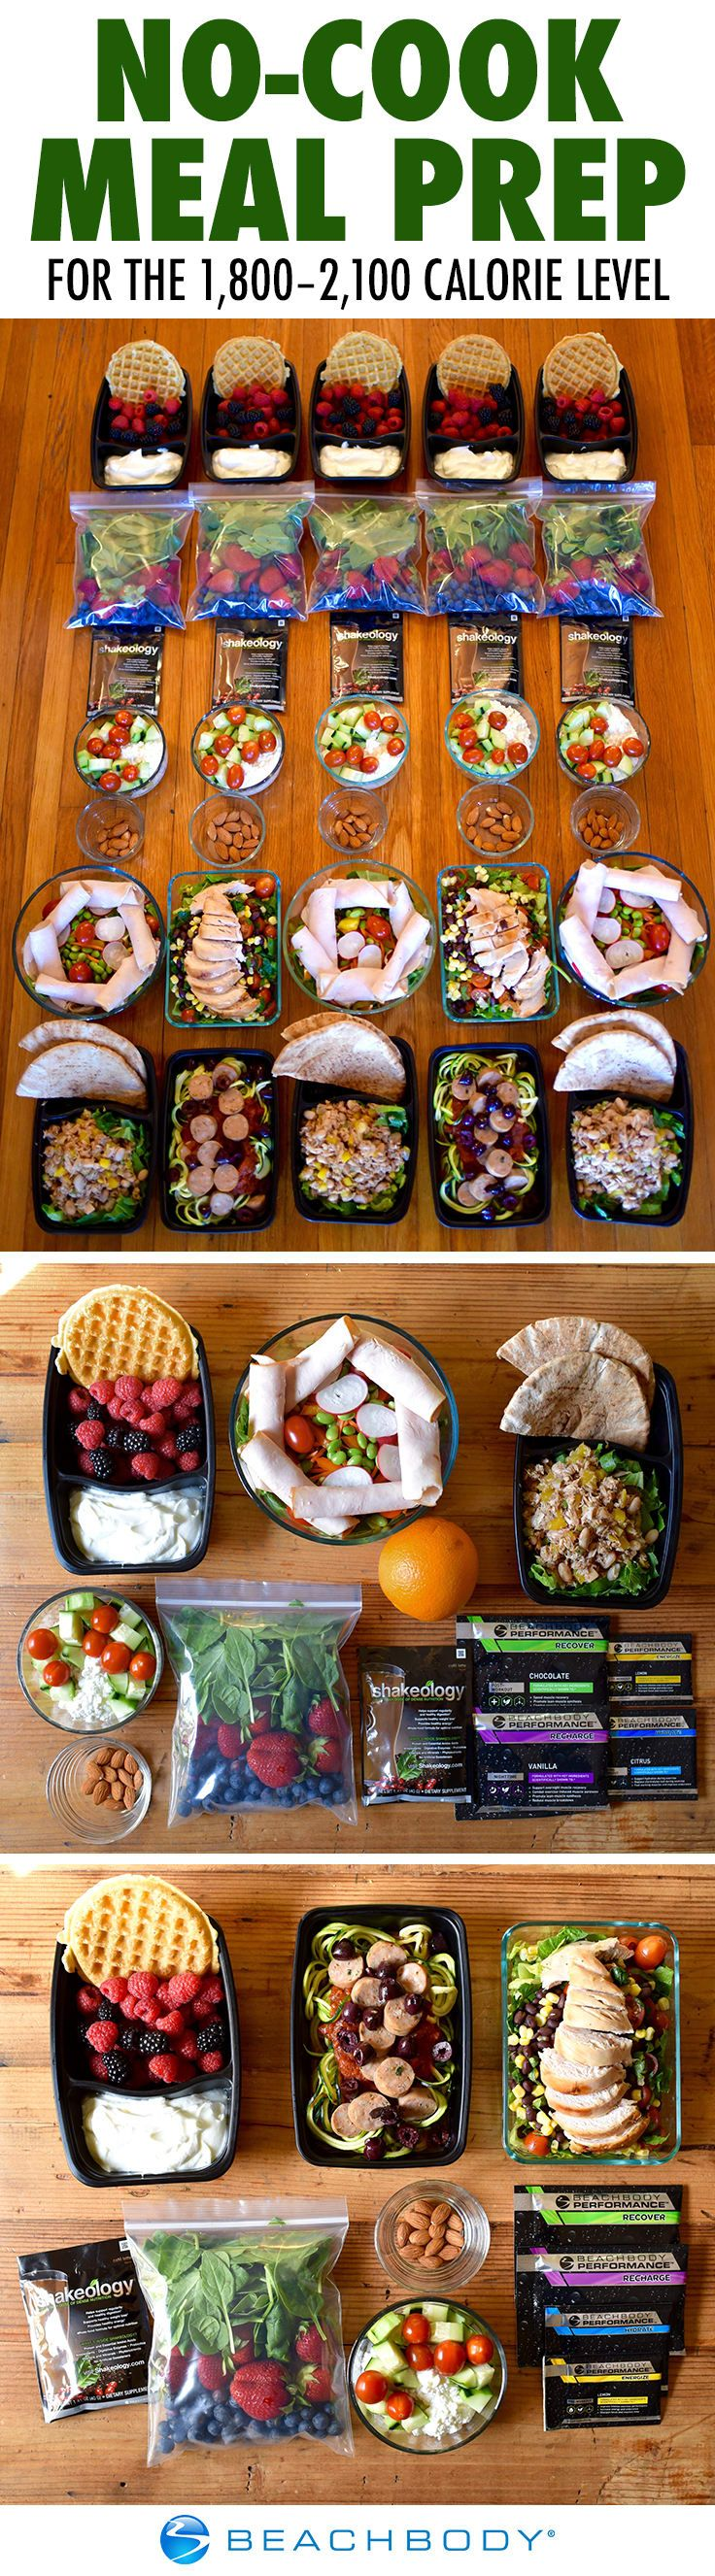 No-Cook Meal Prep | BeachbodyBlog.com